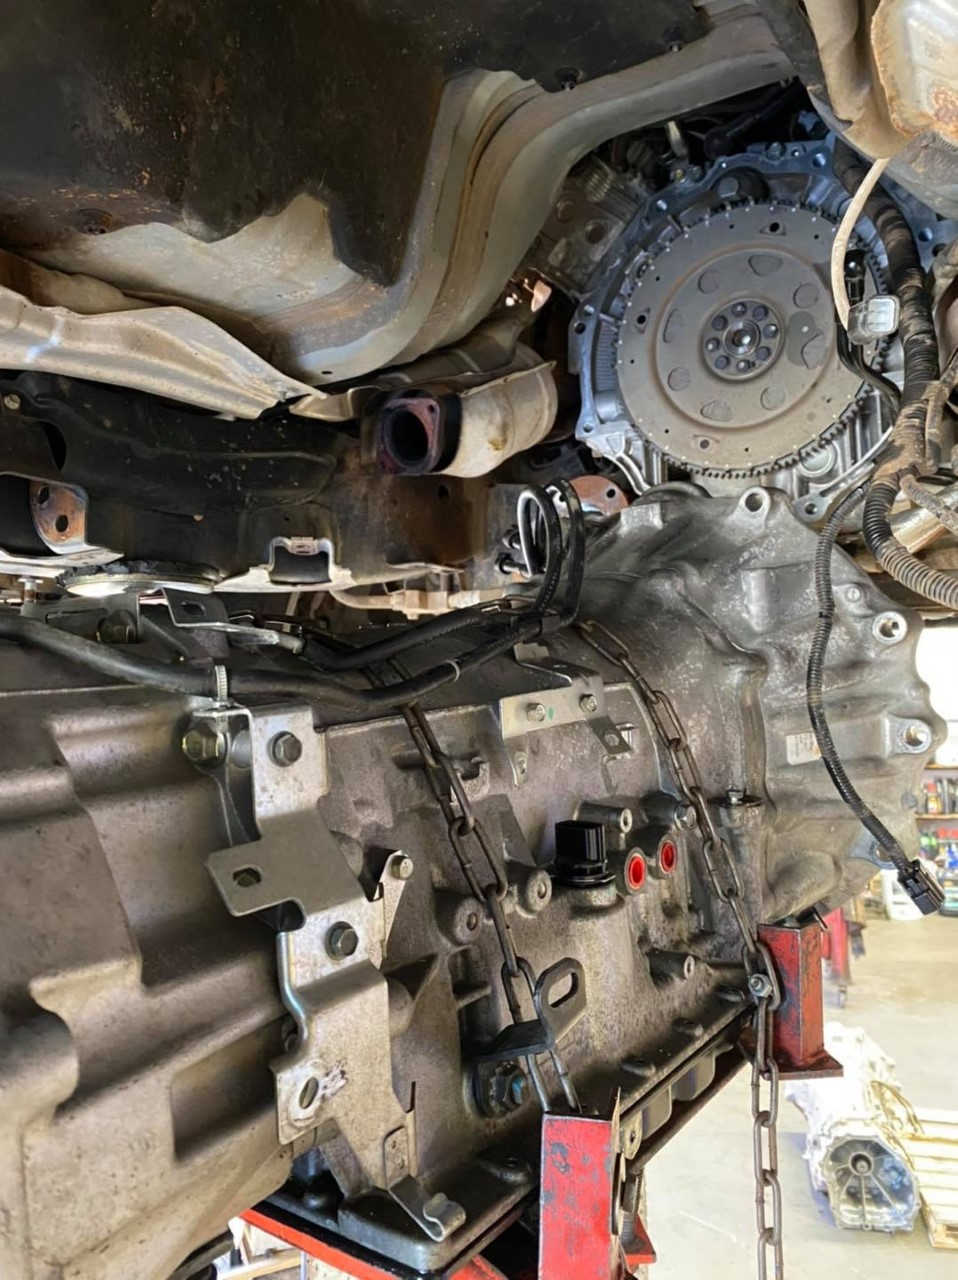 Transmission replacement for a Y62 Patrol